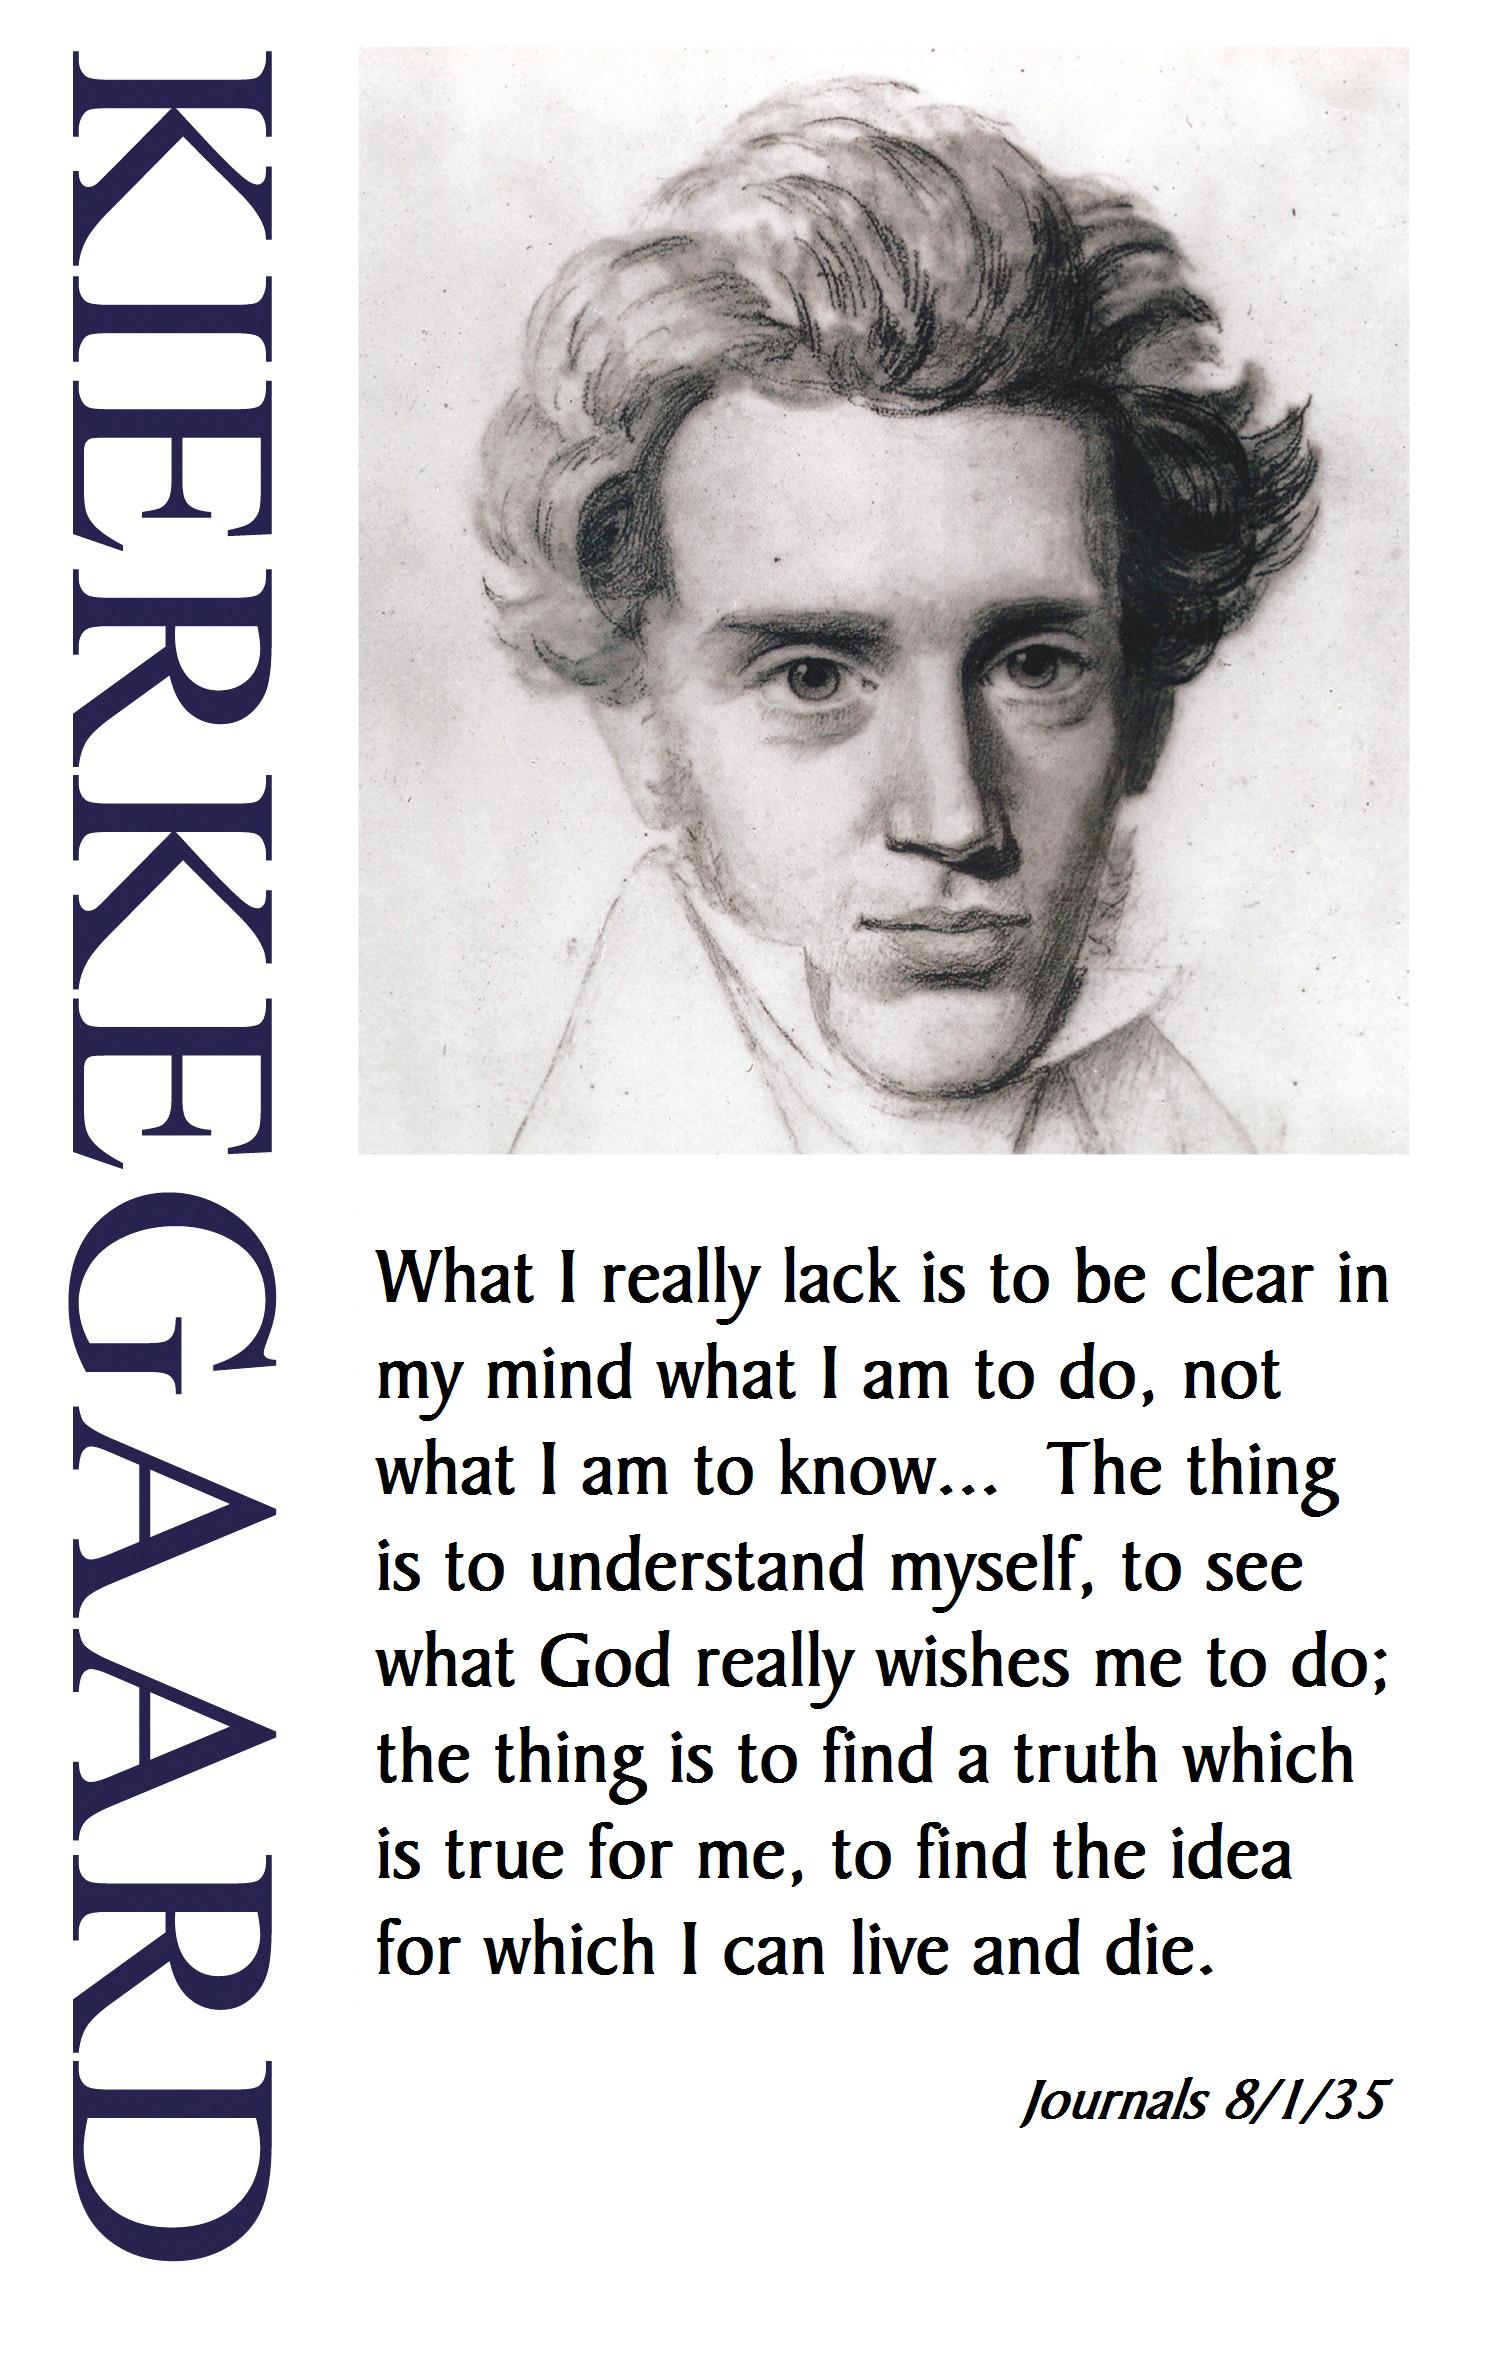 a study of soren kierkegaards existentialism This lesson will focus on the philosophies of soren kierkegaard and his concept of a leap existentialism: soren kierkegaard's leap of faith related study.